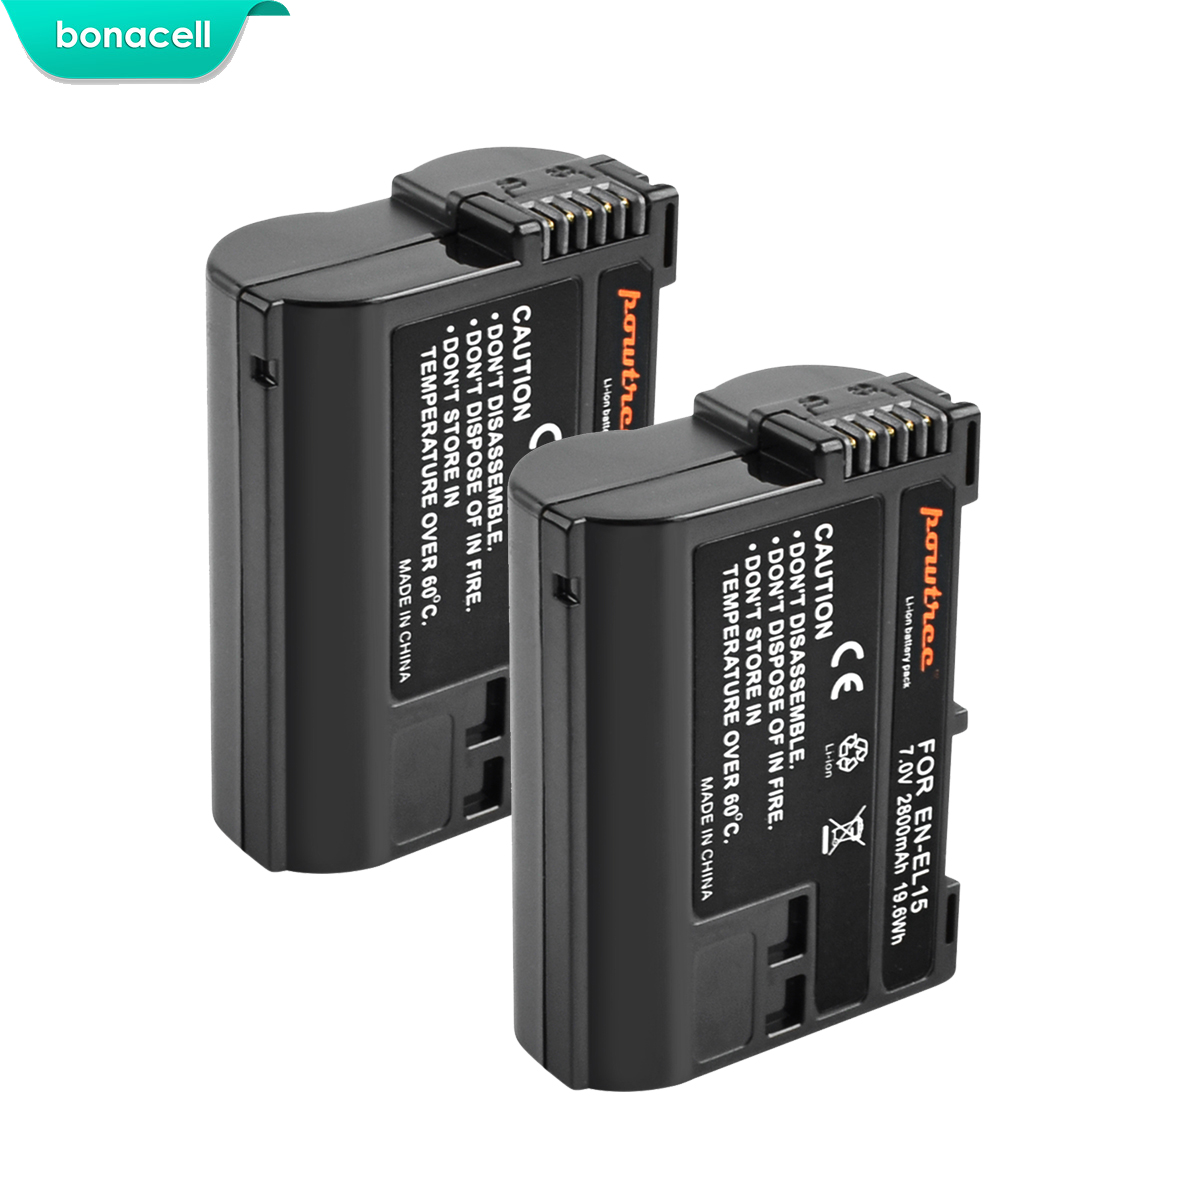 Bonacell Camera Battery D610 EN-EL15 Nikon D810 D7200 DSLR D600 2800mah for D800 D800e/D810/D7000/..